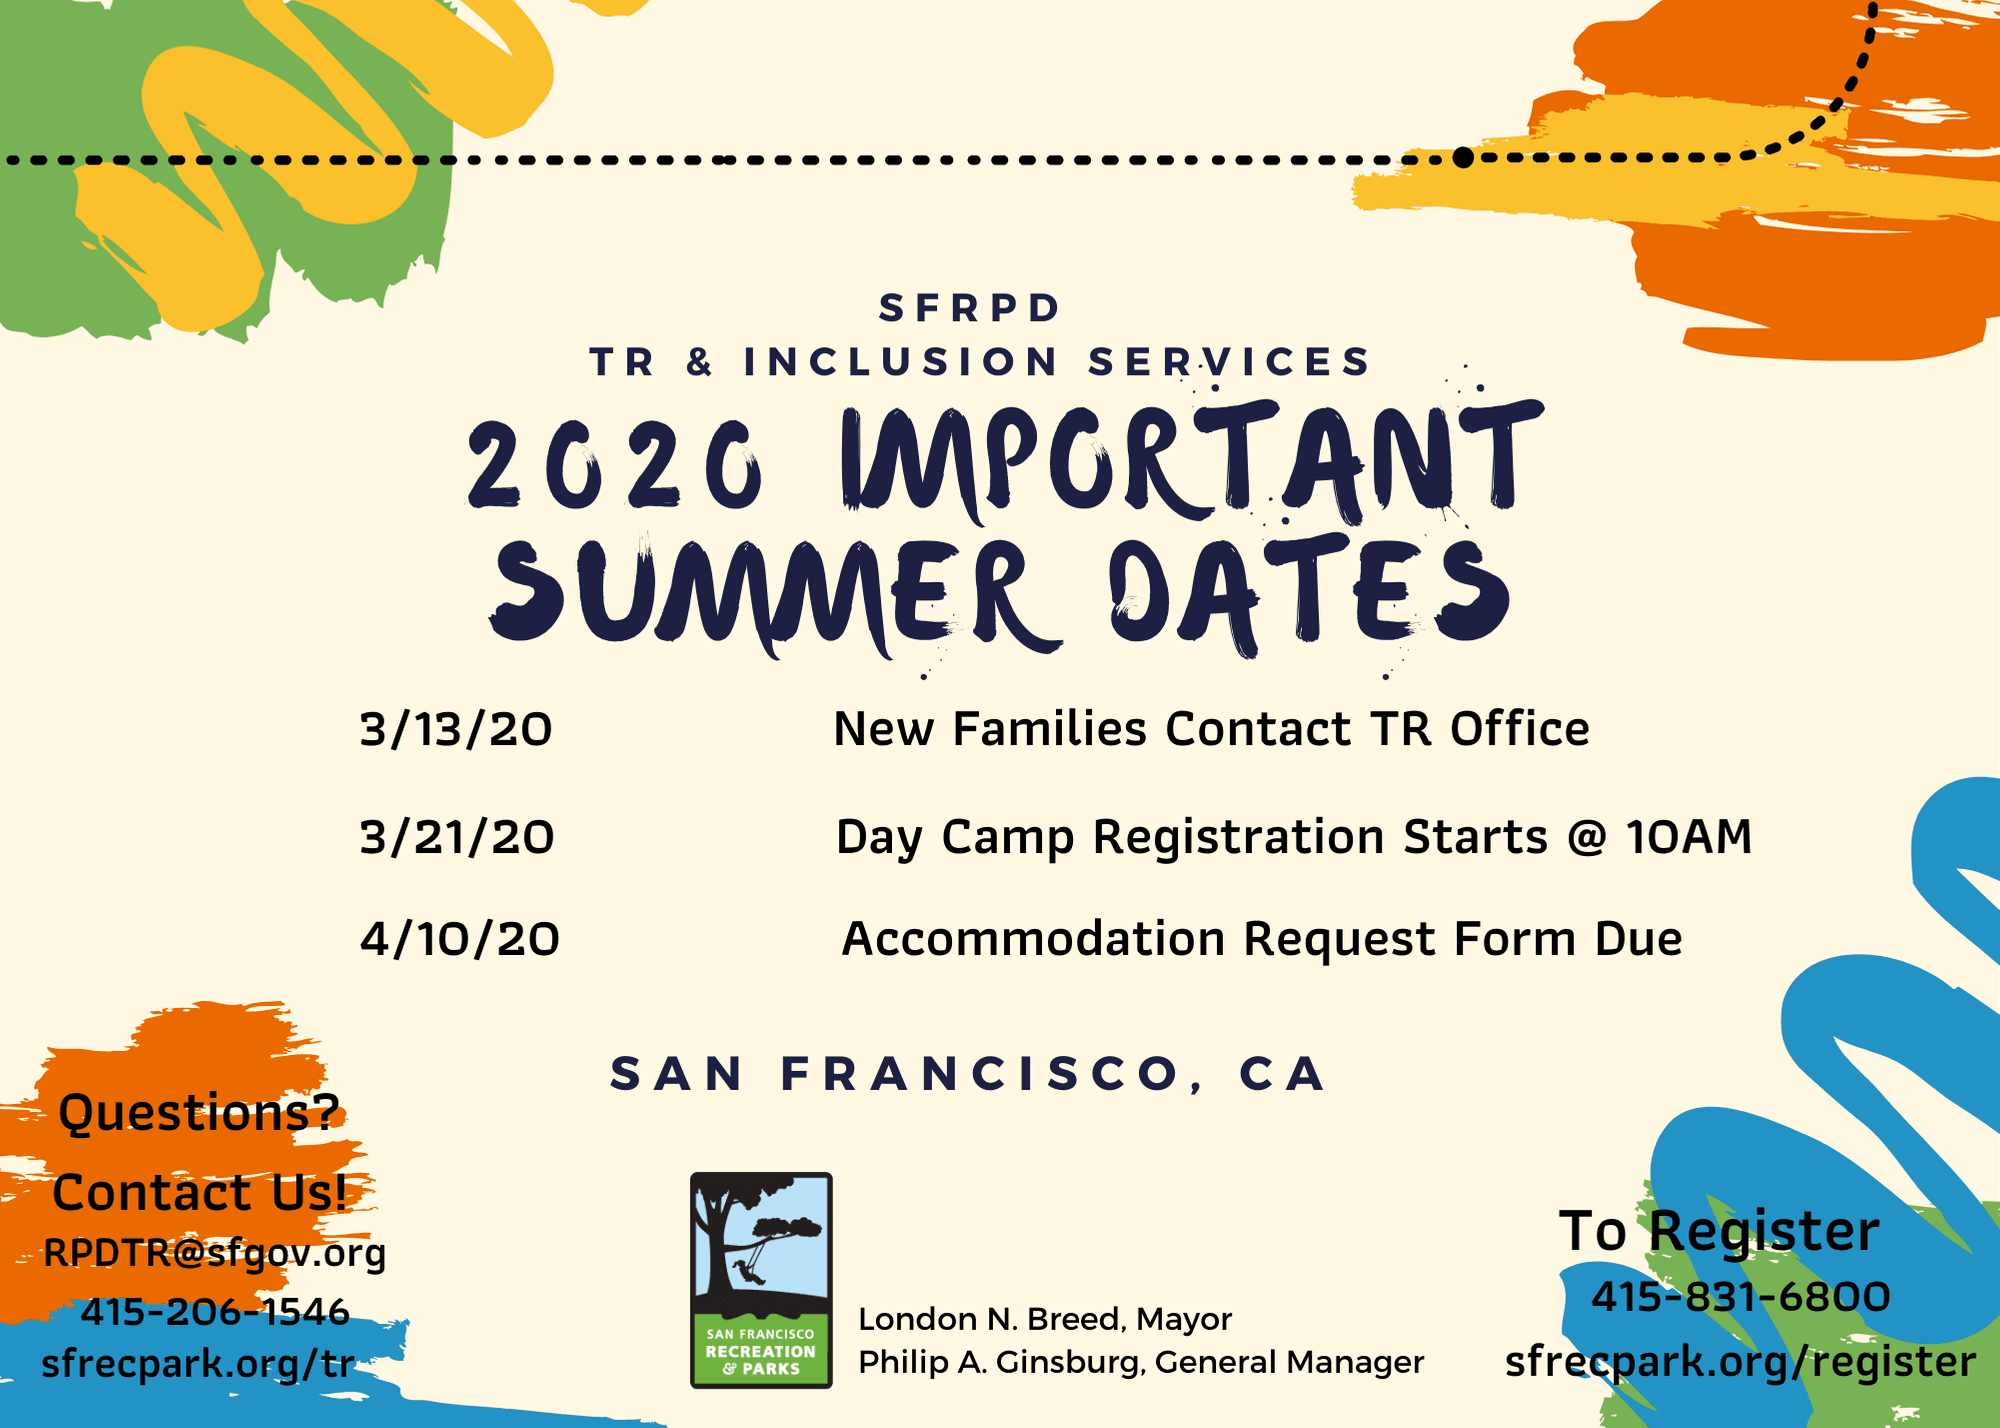 Summer 2020 Important Dates image